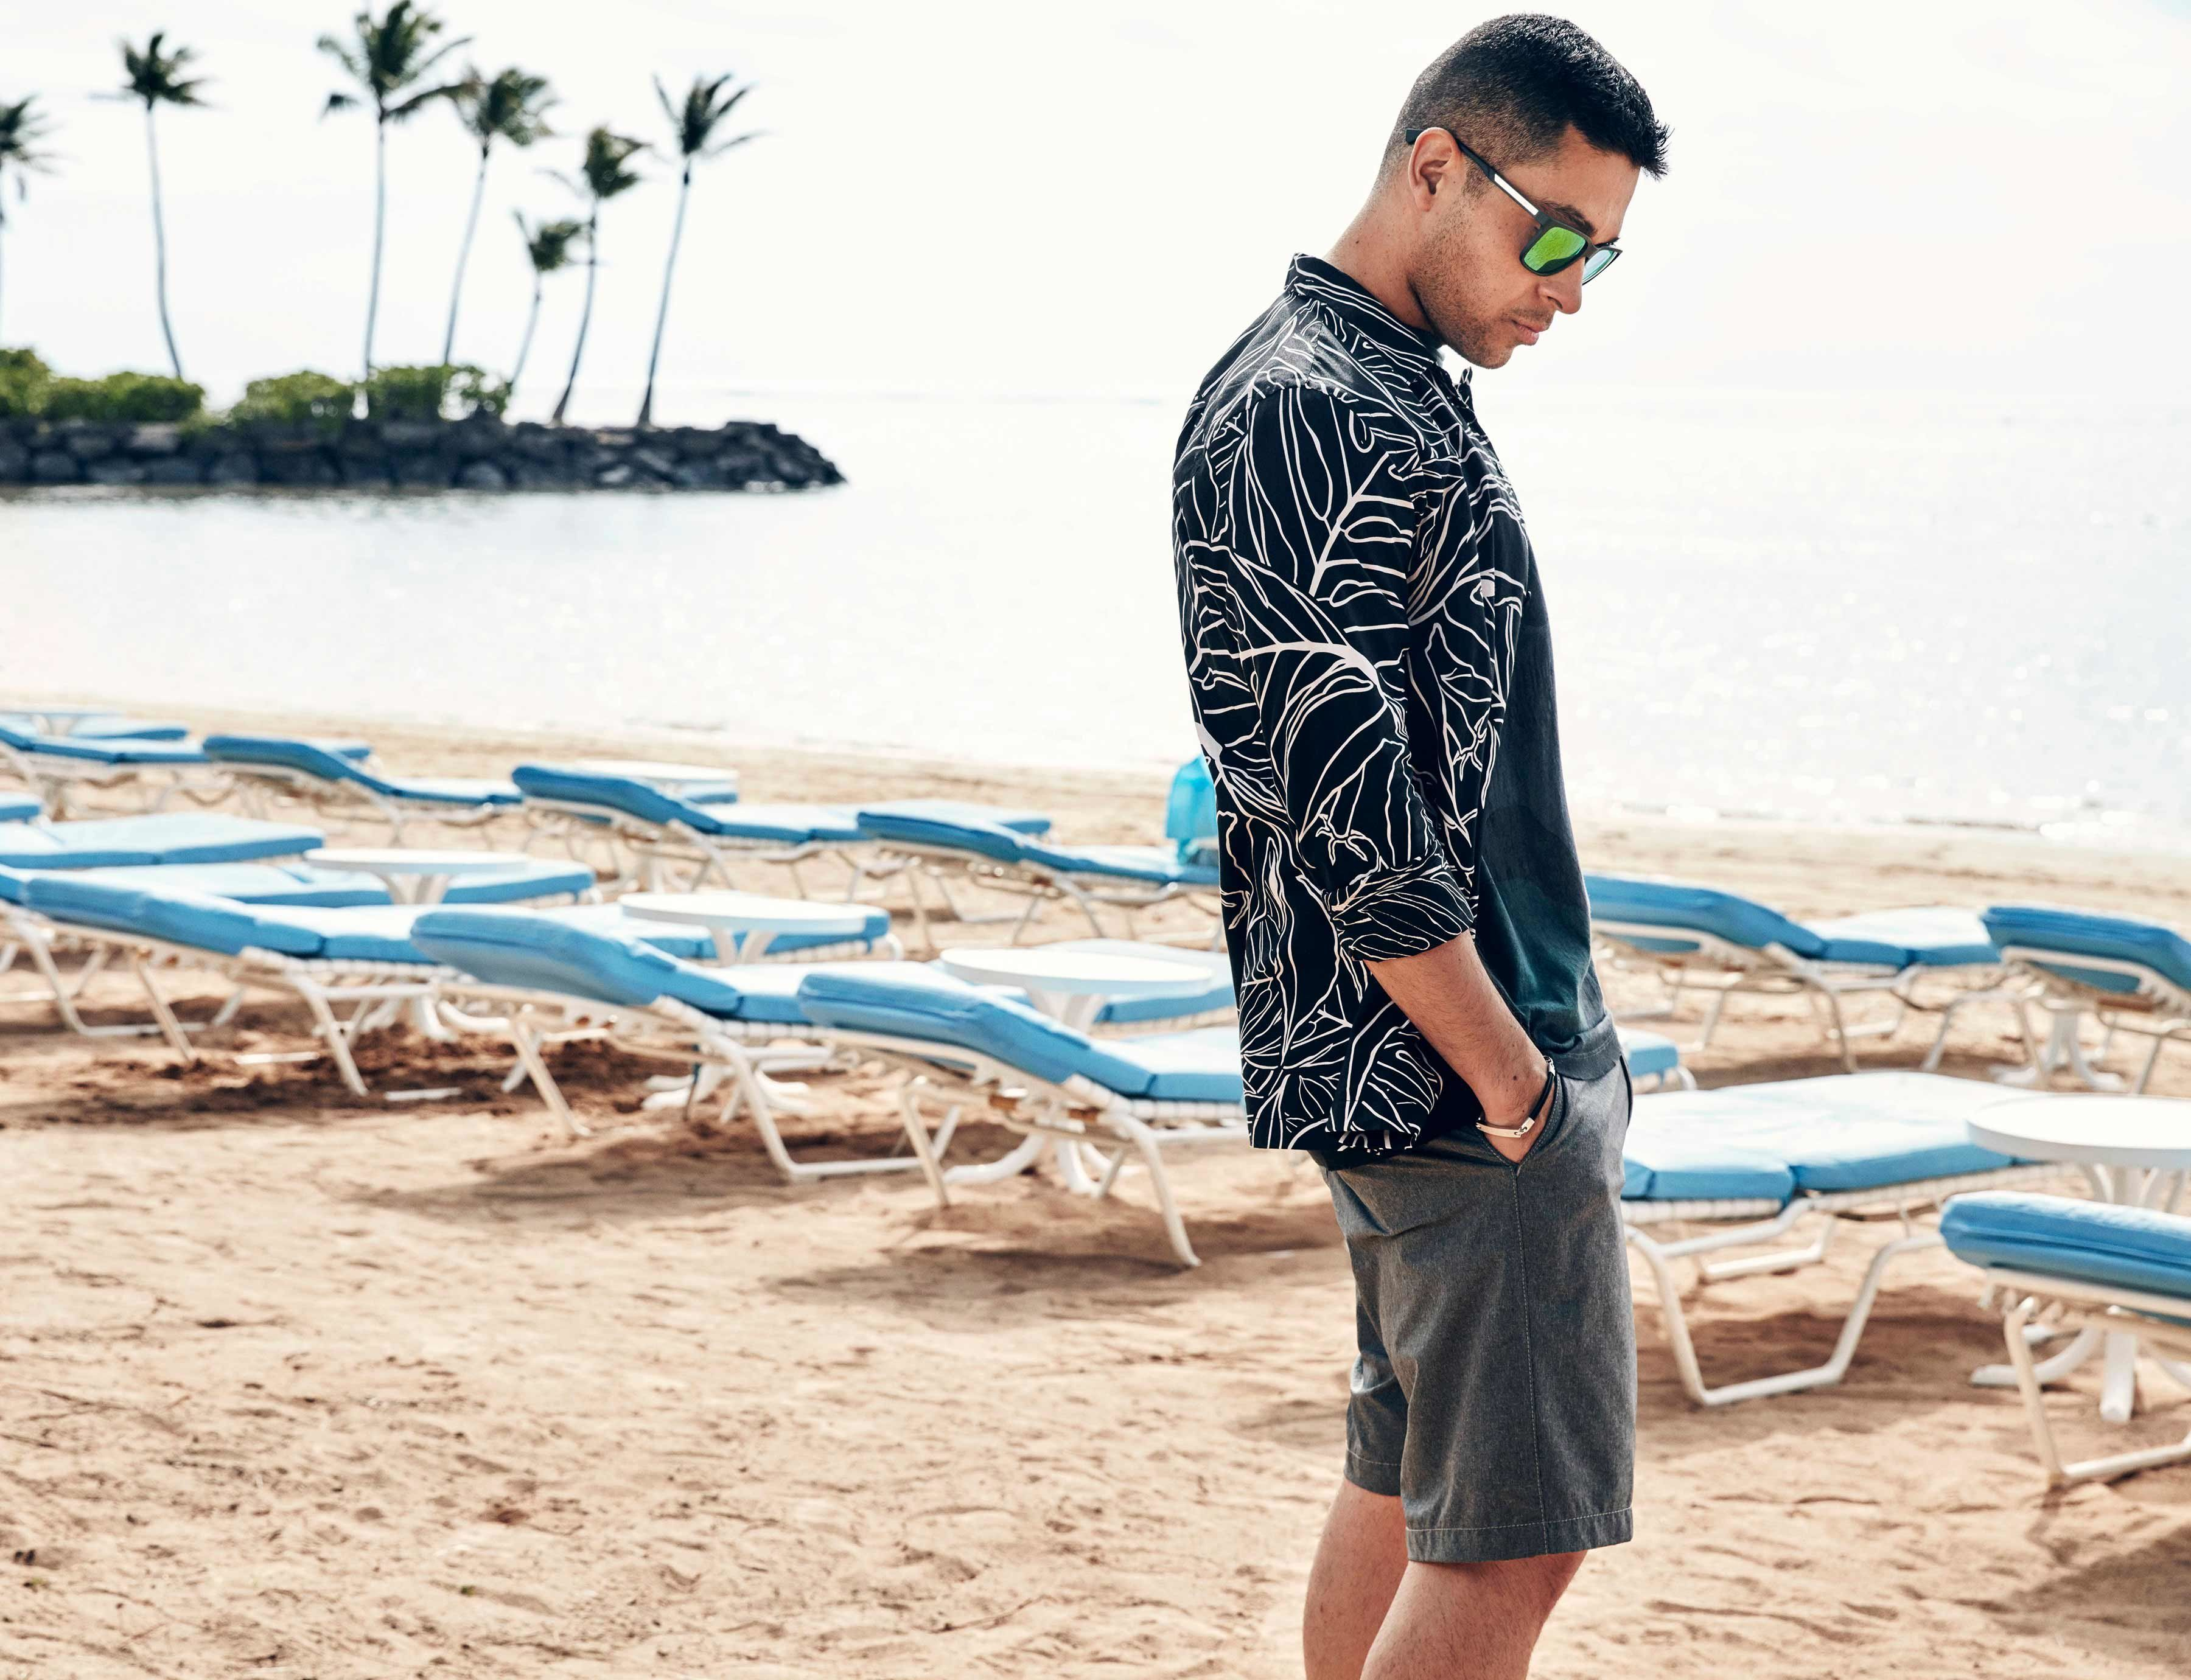 Wilmer Valderrama in a striped jacket looking down on the sandy beach in front of rows of blue lounge chairs